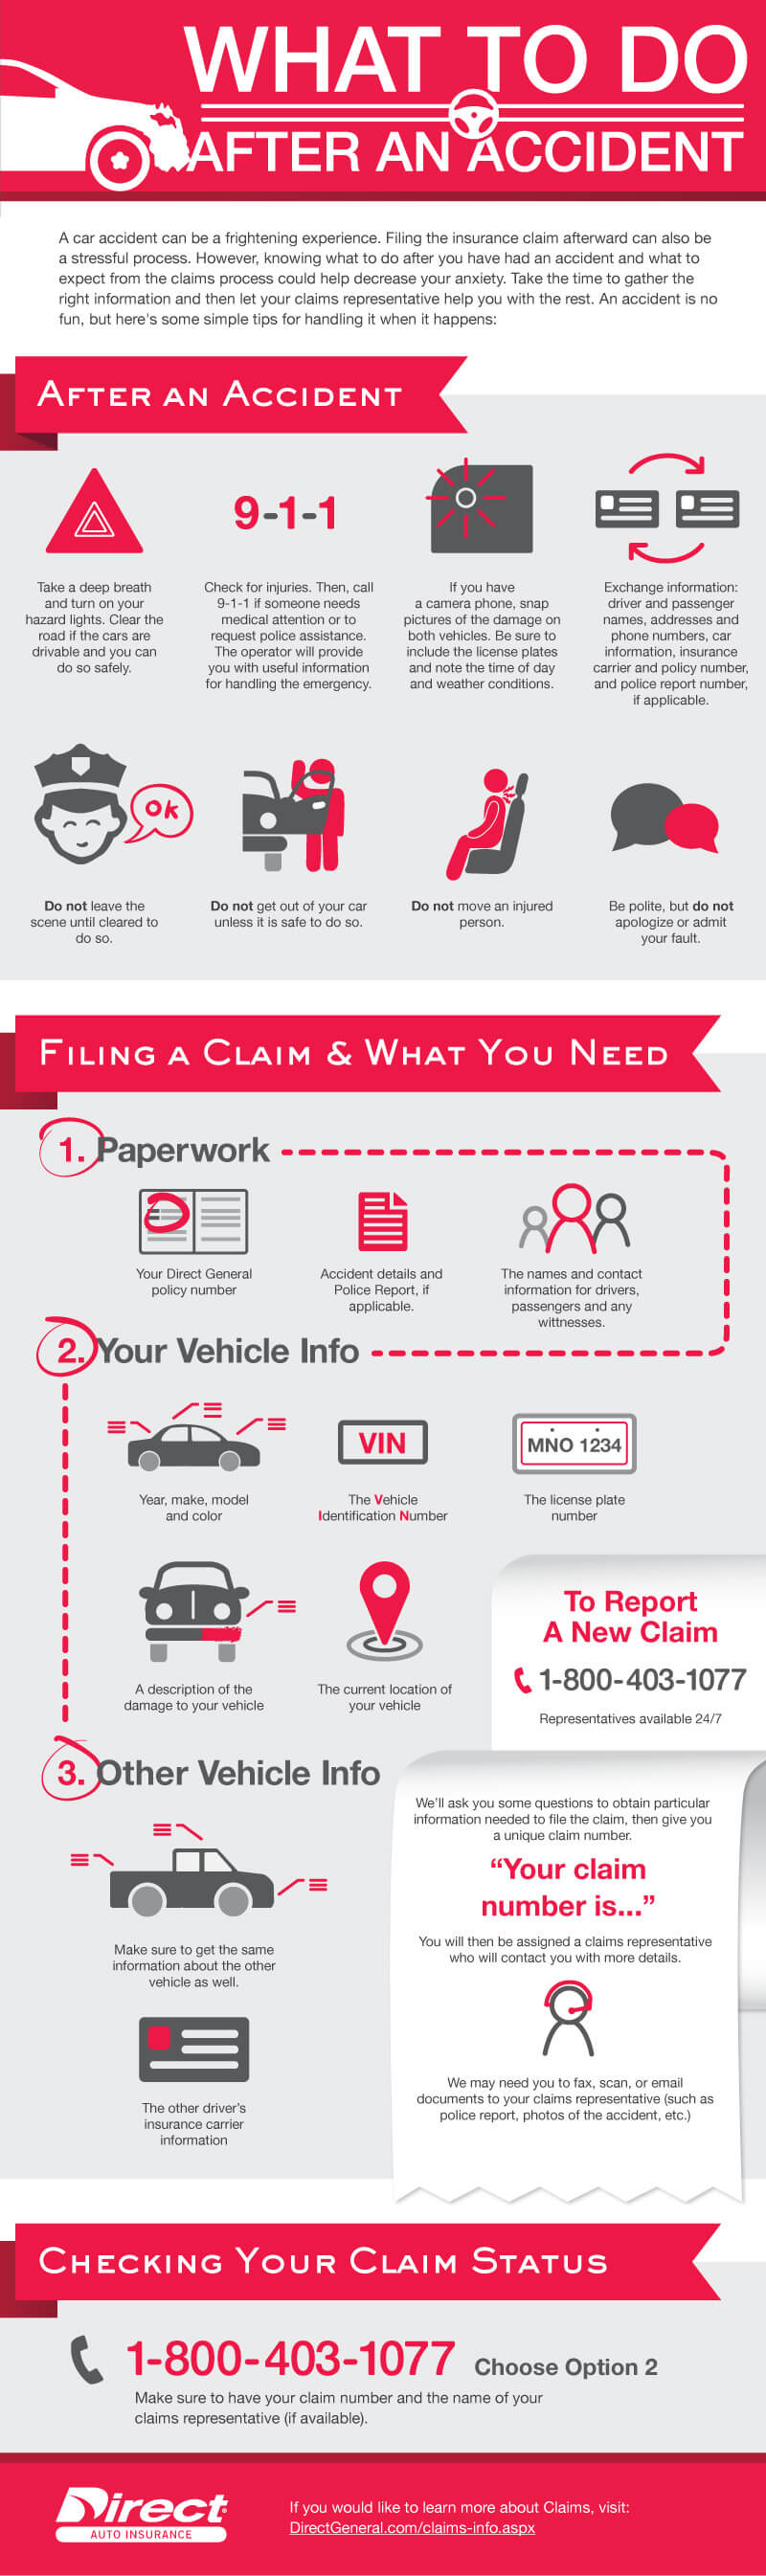 What to Do After a Car Accident | Infographic | Direct ...